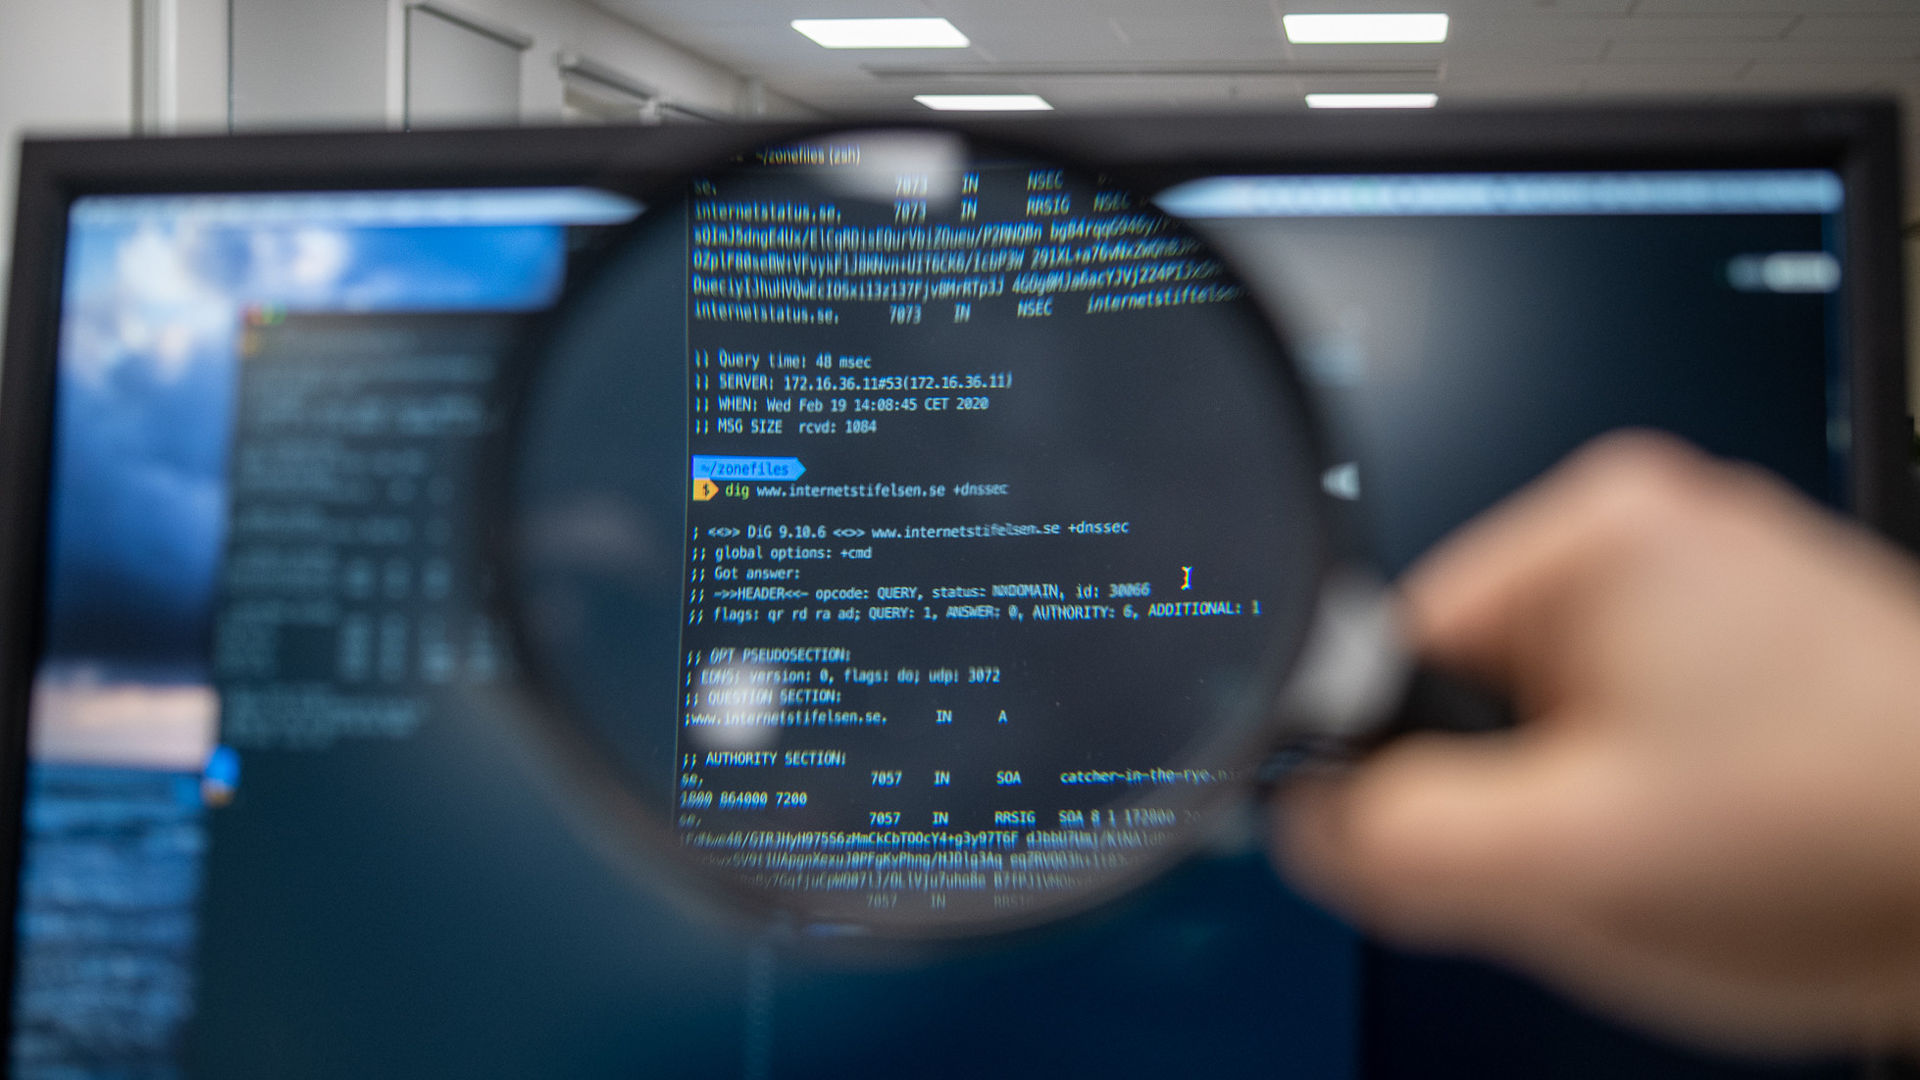 Magnifying glass investigating computer screen